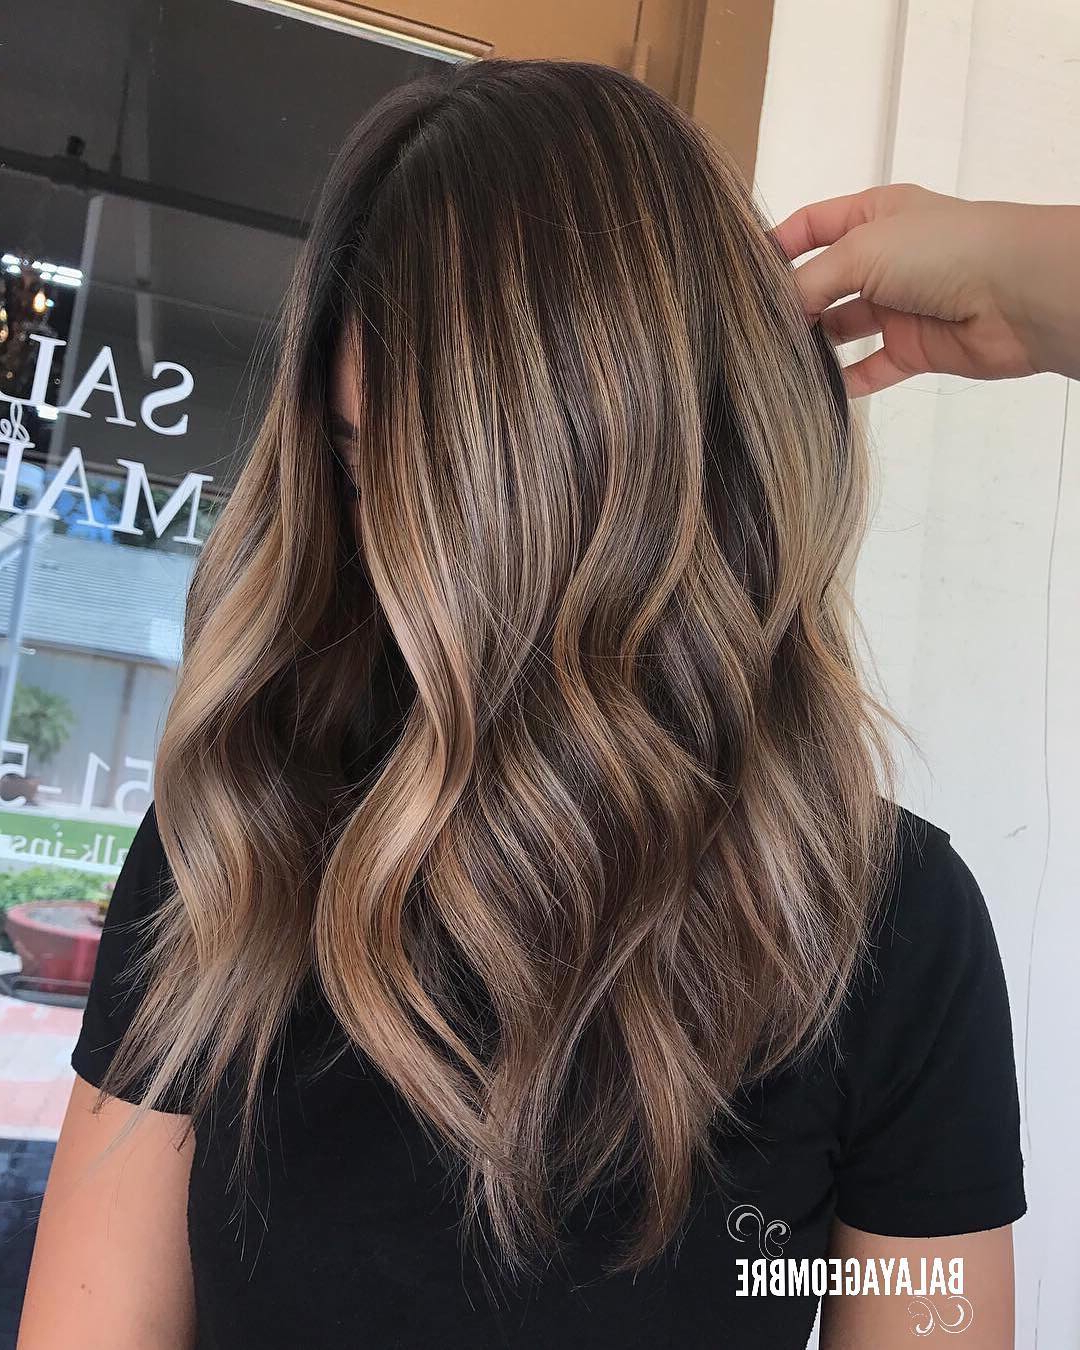 Widely Used Medium Medium Hairstyles With Layers With Regard To 10 Best Medium Layered Hairstyles 2019 – Brown & Ash Blonde Fashion (View 20 of 20)